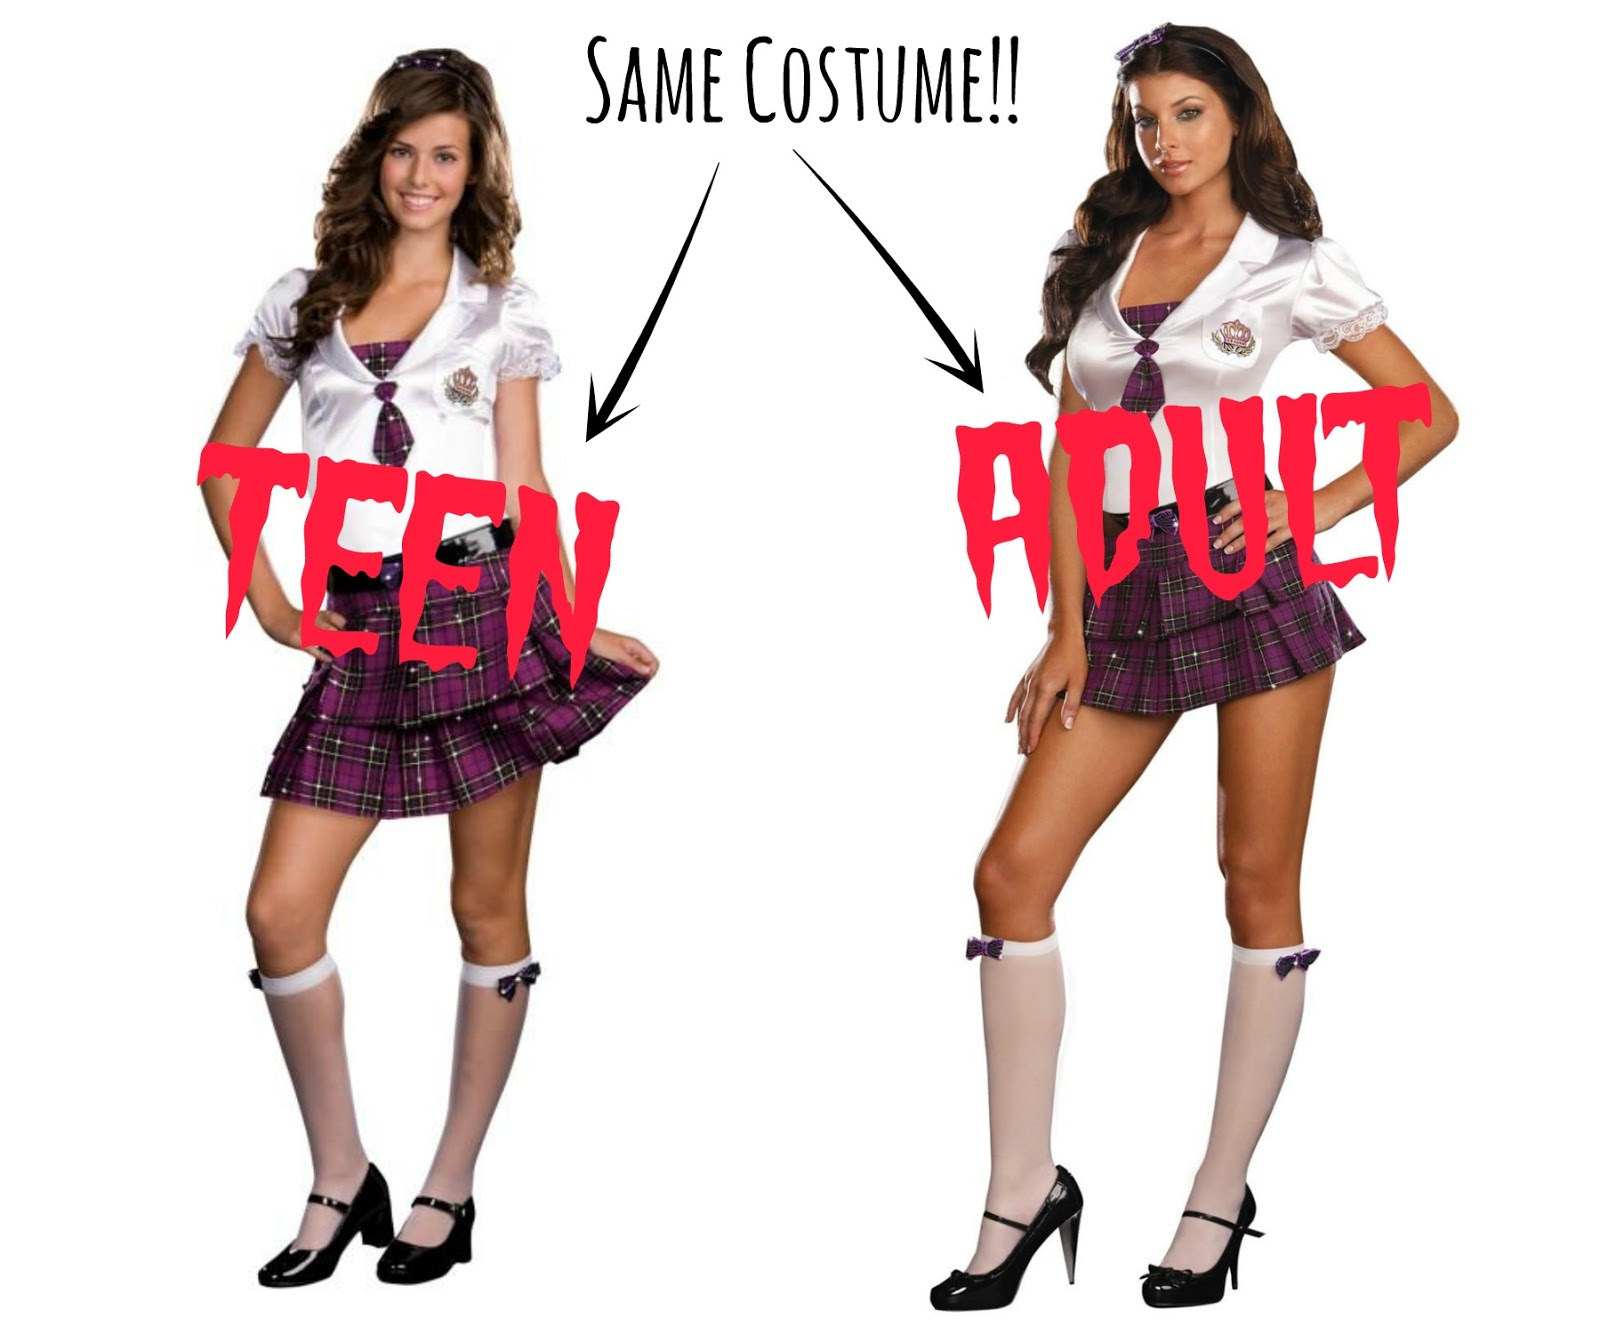 10 modest alternatives to popular halloween costumes for teen girls - Easy Homemade Halloween Costumes For Teenage Girl